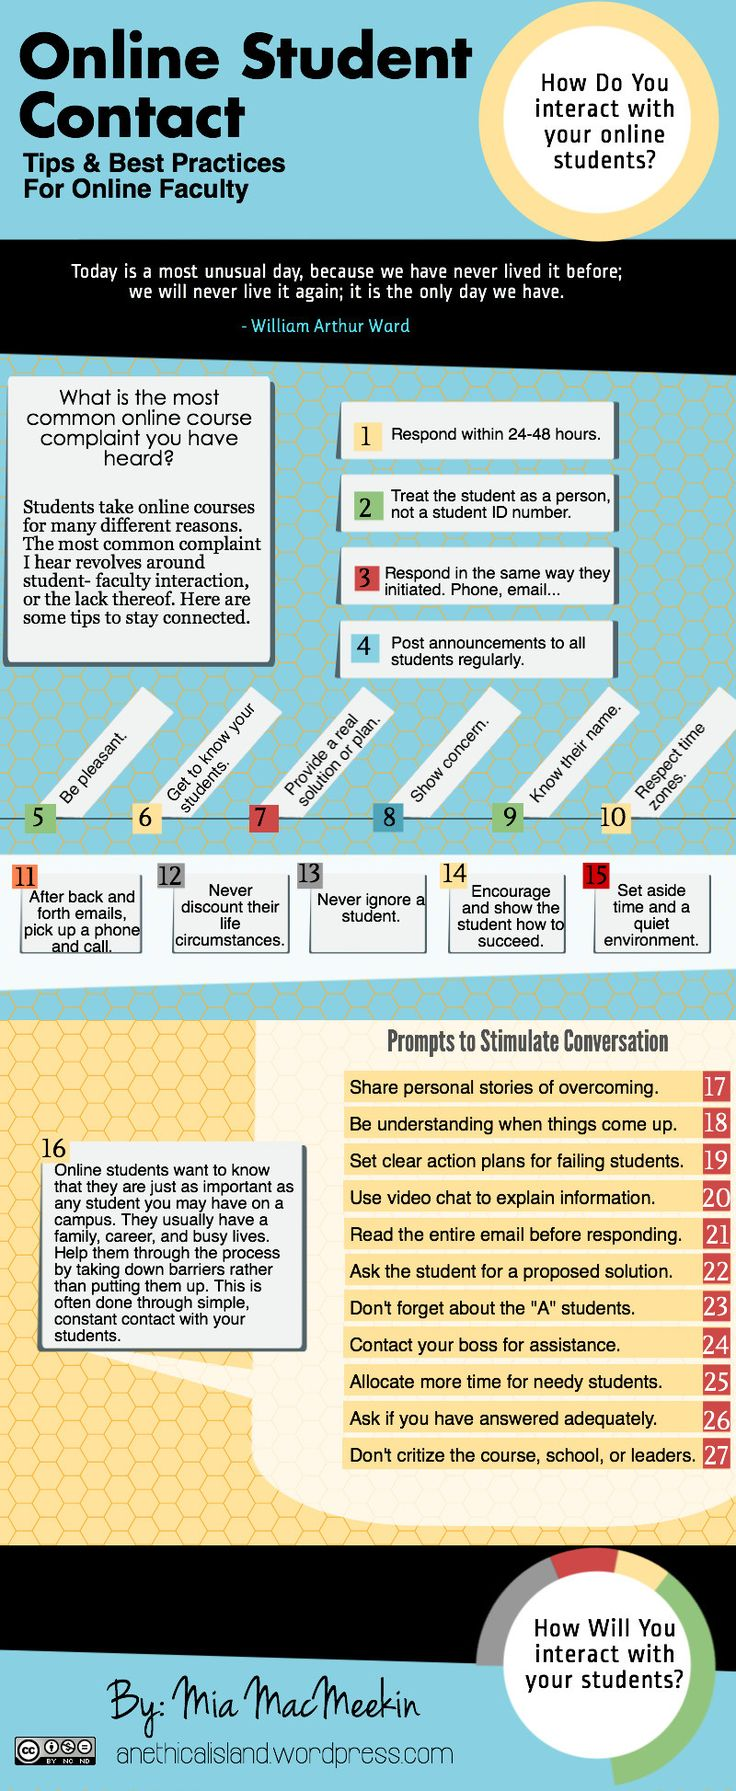 Online student contact infographic